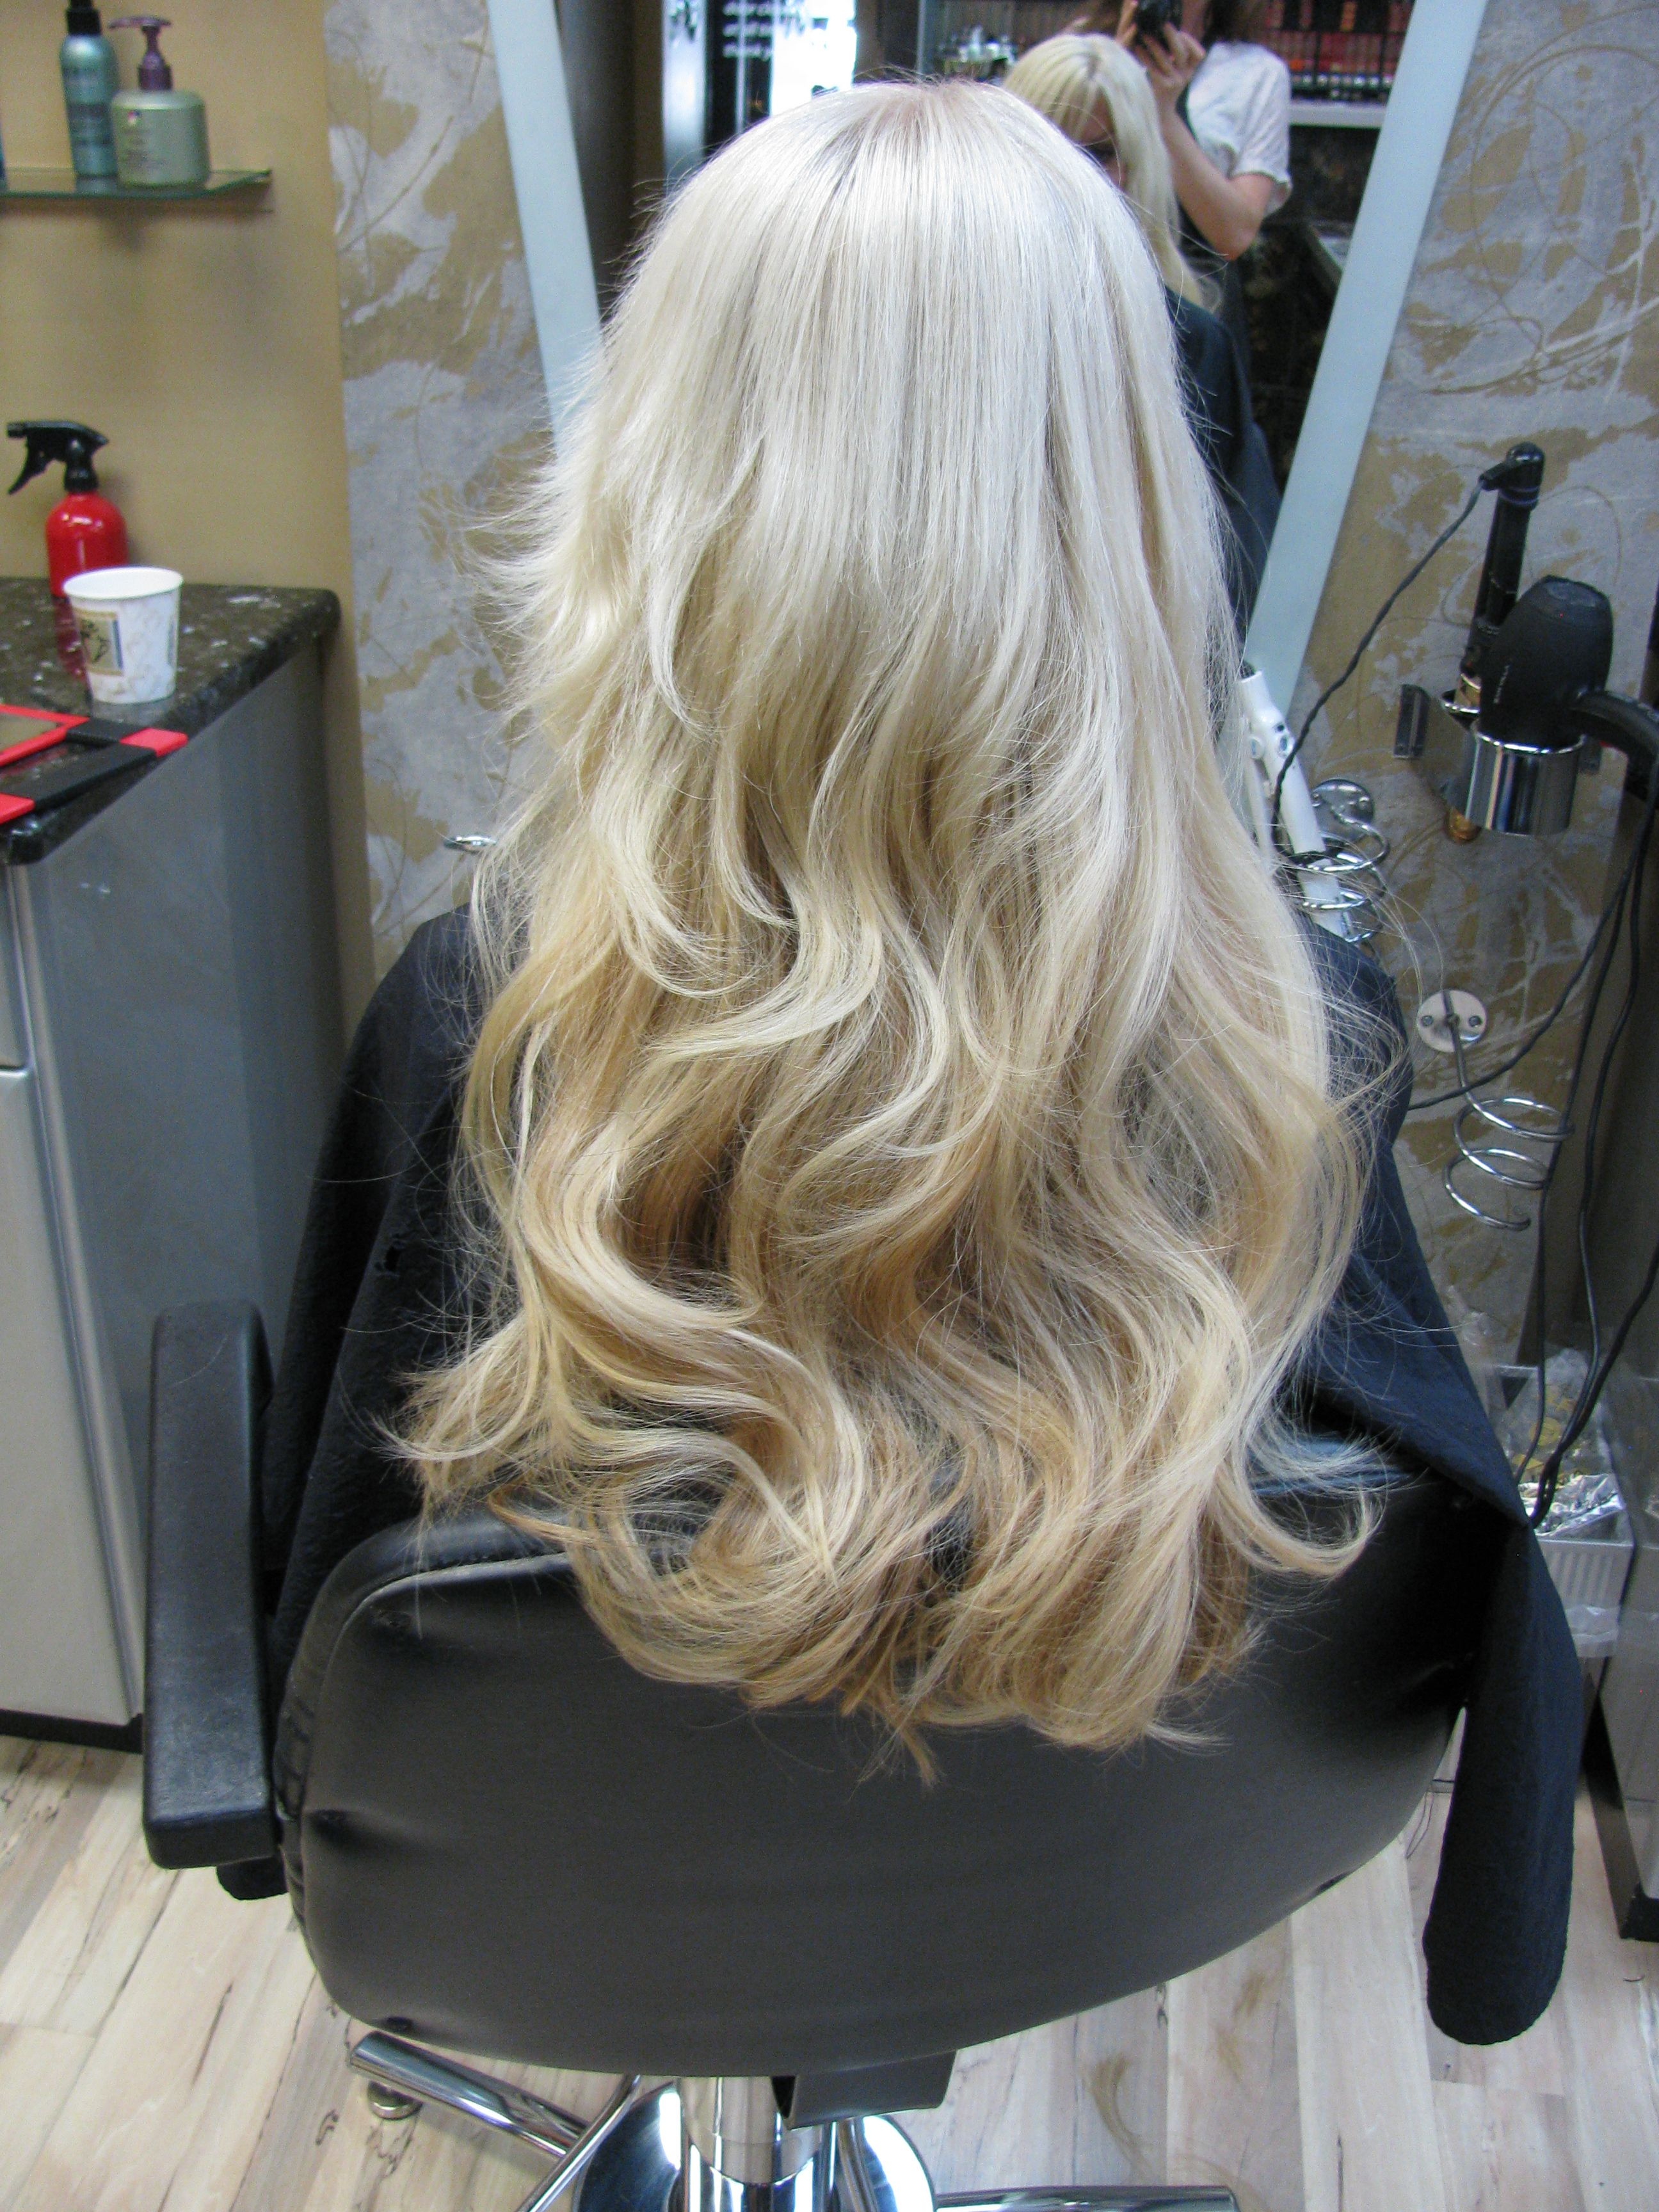 Our Hair Extensions Do Make Dreams Come True Hair Extensions Of